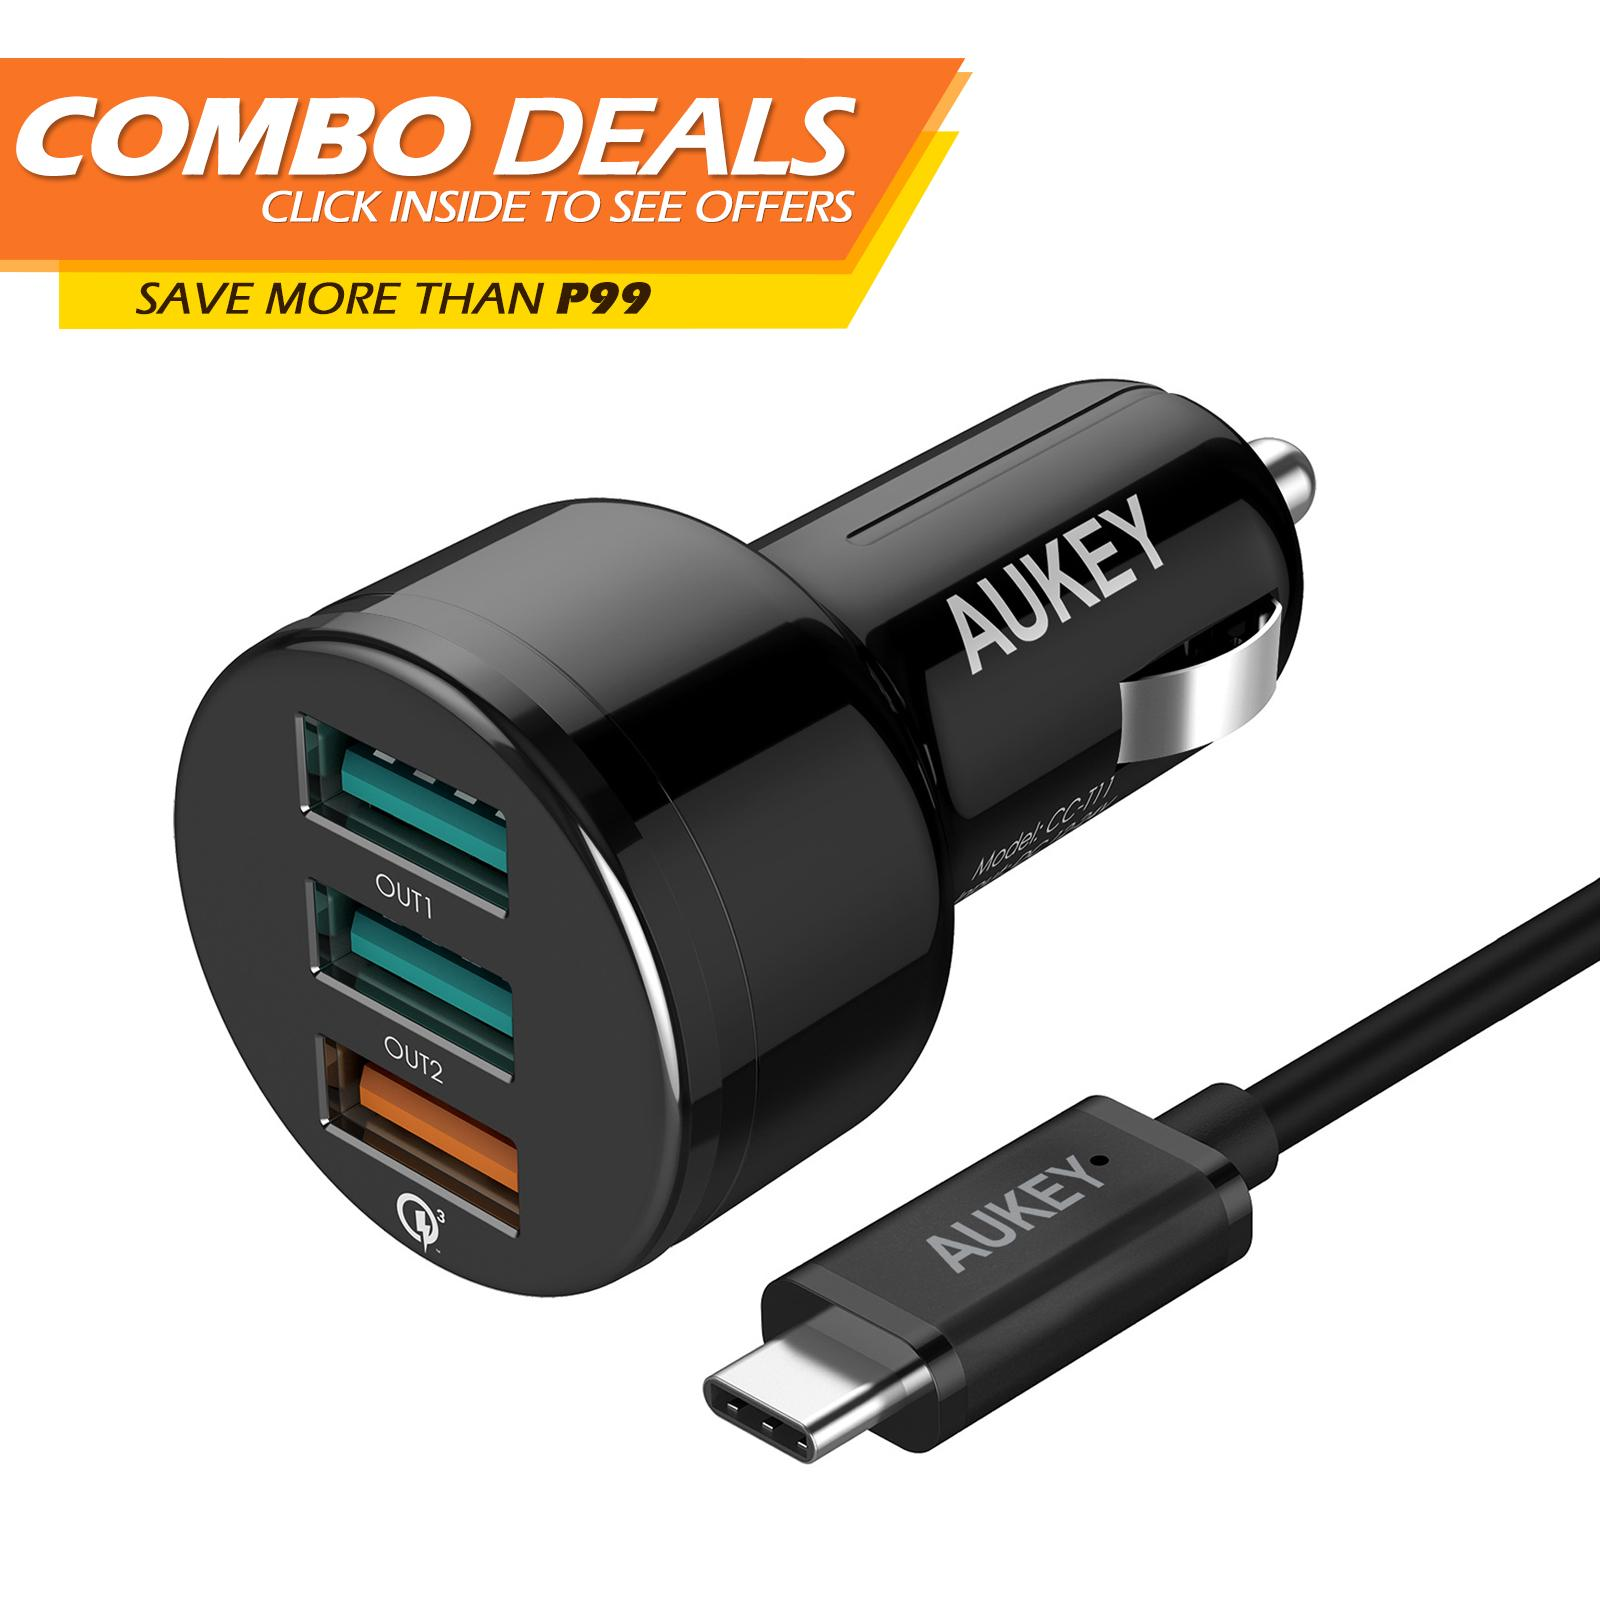 Buy Sell Cheapest Aukey Storewired Usb Best Quality Product Deals Cb D5 Micro 5 Pack Original Kabel Data Cc T11 3 Ports Car Charger With Qualcomm Quick Charge 30 And Aipower For Samsung Galaxy S8 Plus S9